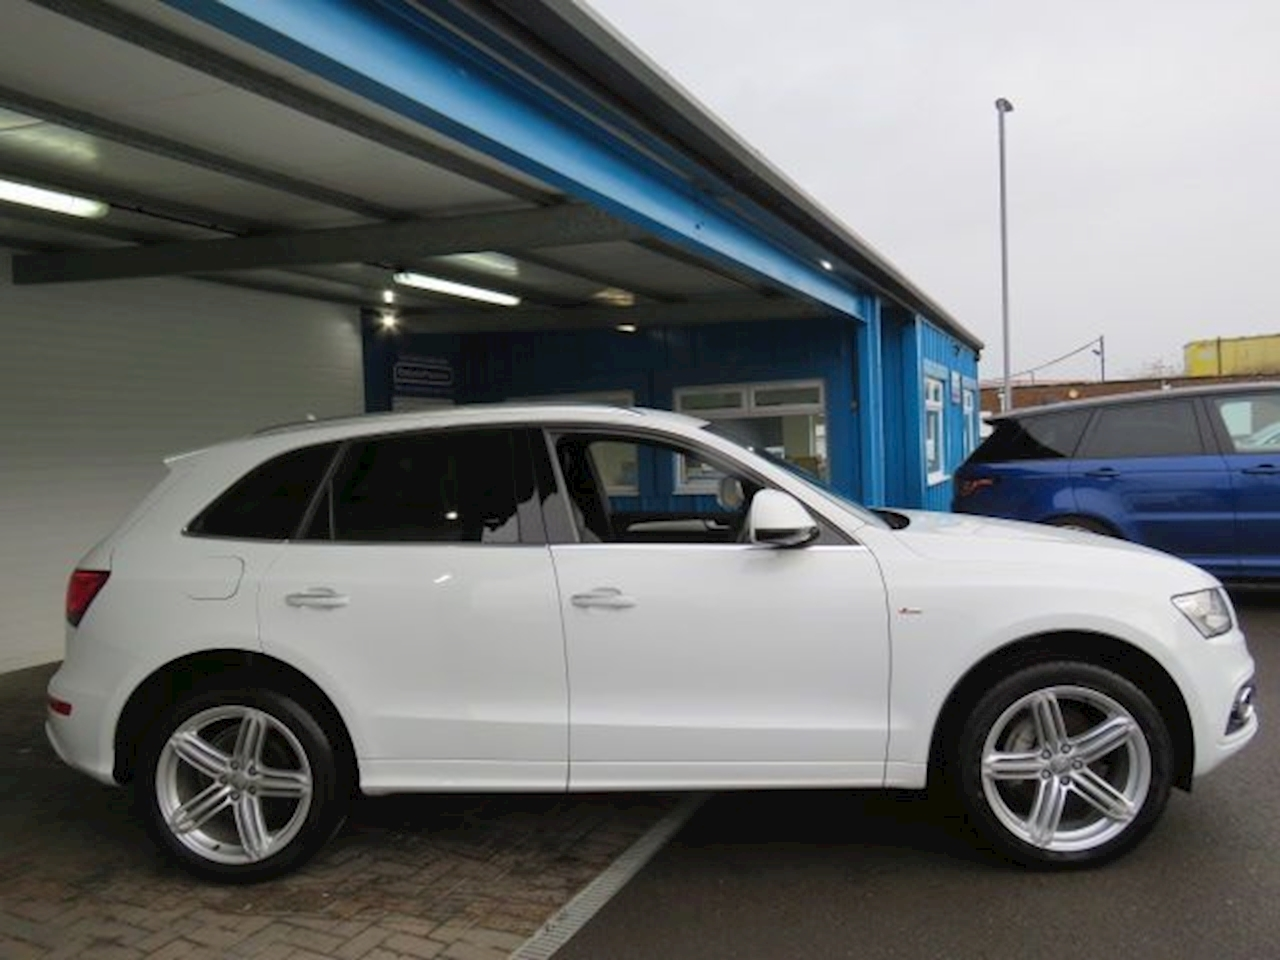 Audi Q5 Tdi Quattro S Line Plus Estate 2.0 Manual Diesel